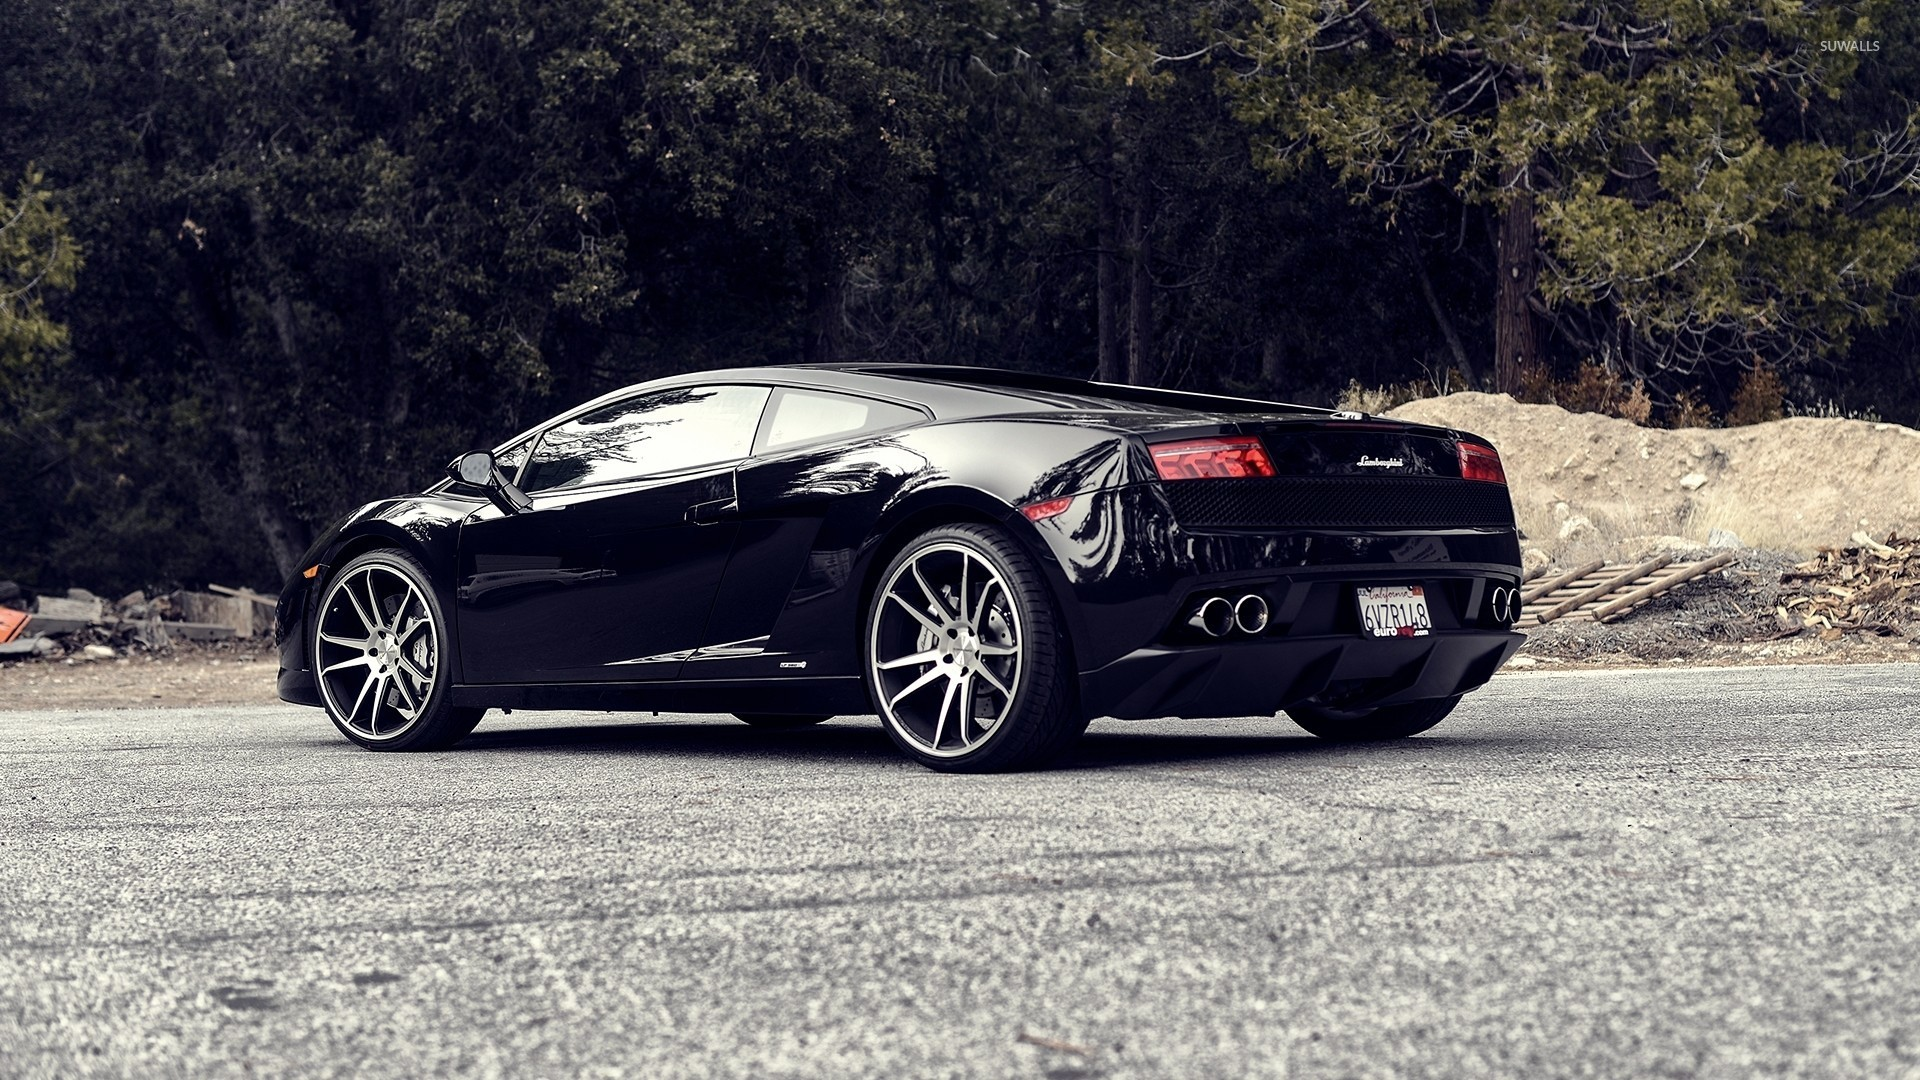 back side view of a black lamborghini gallardo wallpaper 1920x1080 jpg